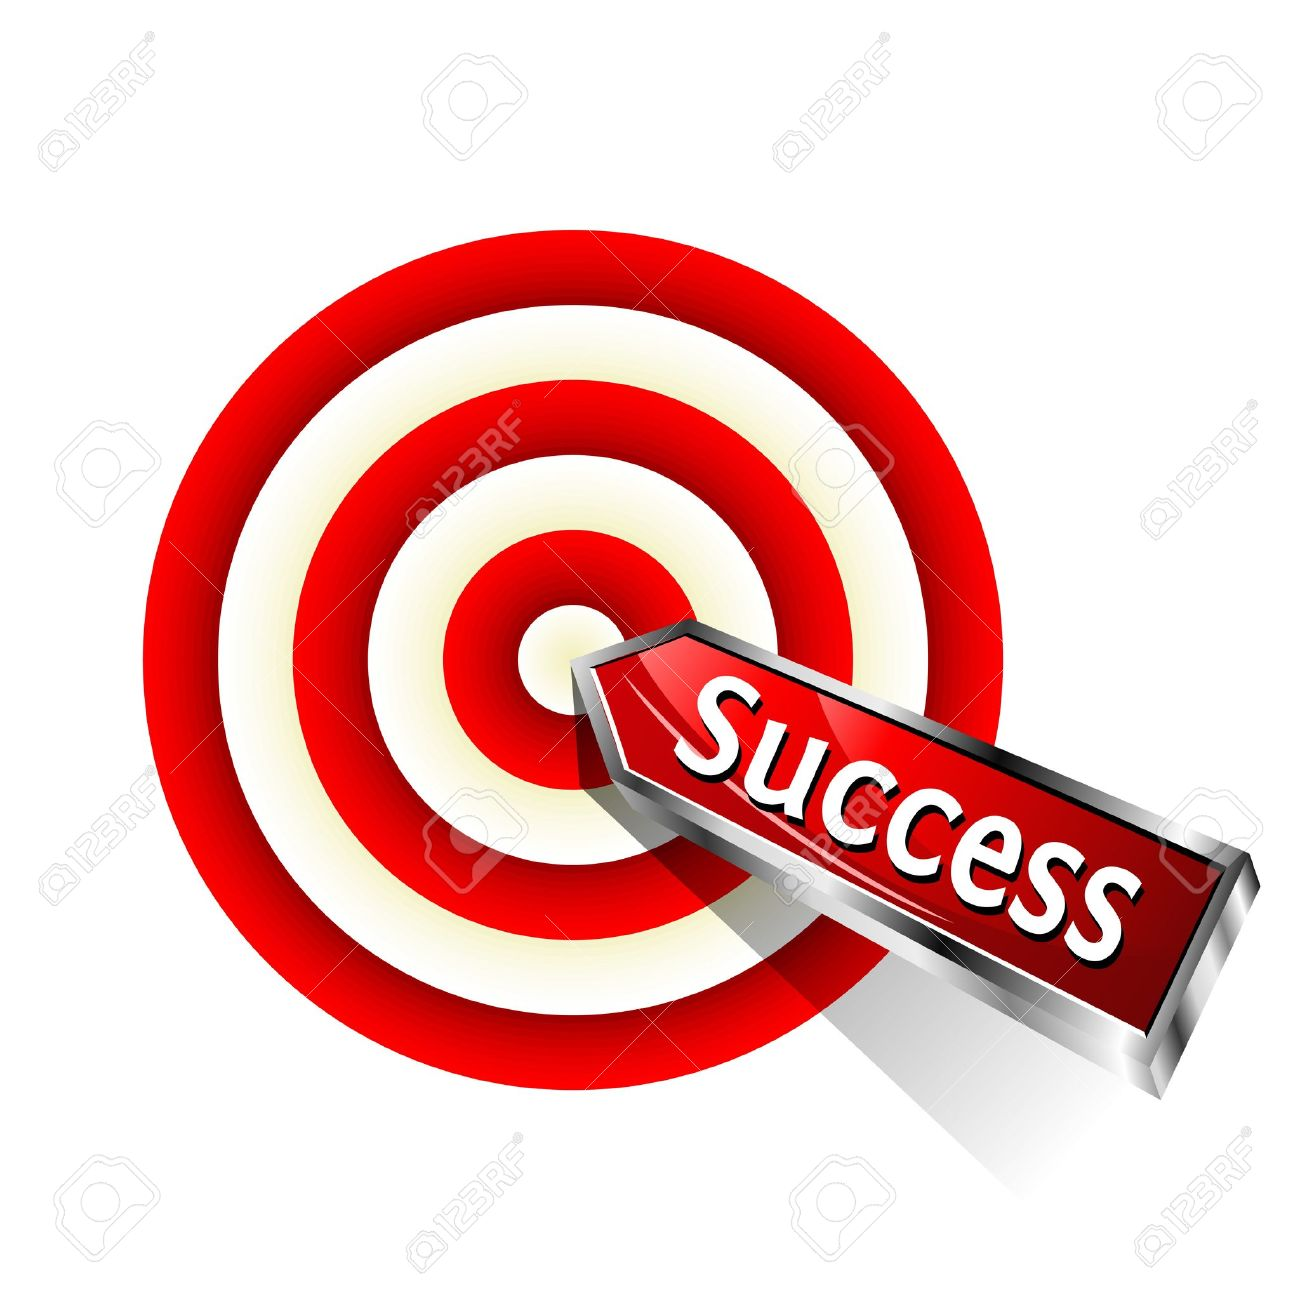 Success Clip Art Free.